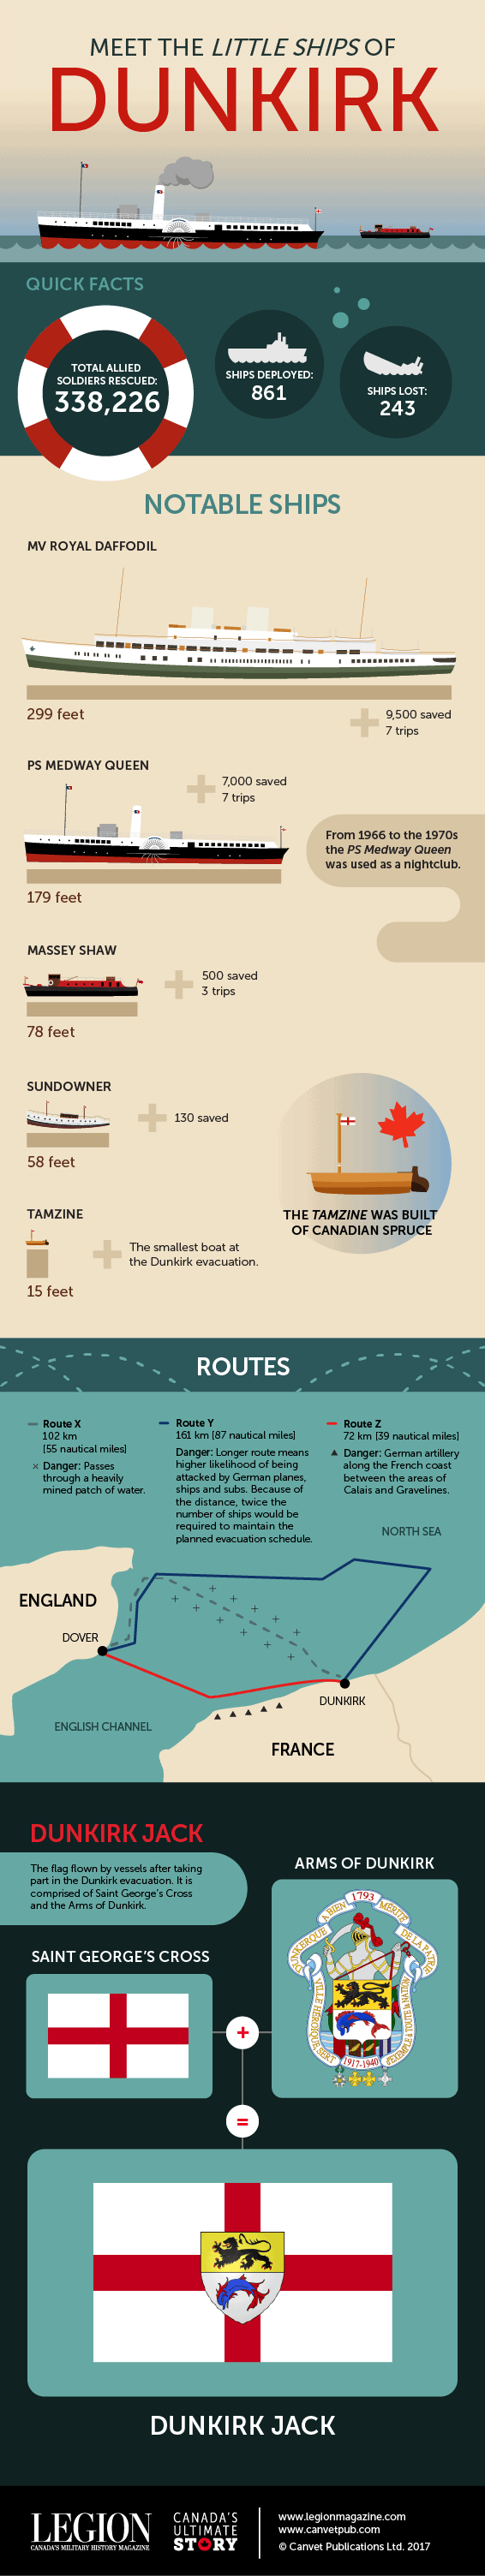 Infographic depicting different types of ships that were used in the battle of Dunkirk.